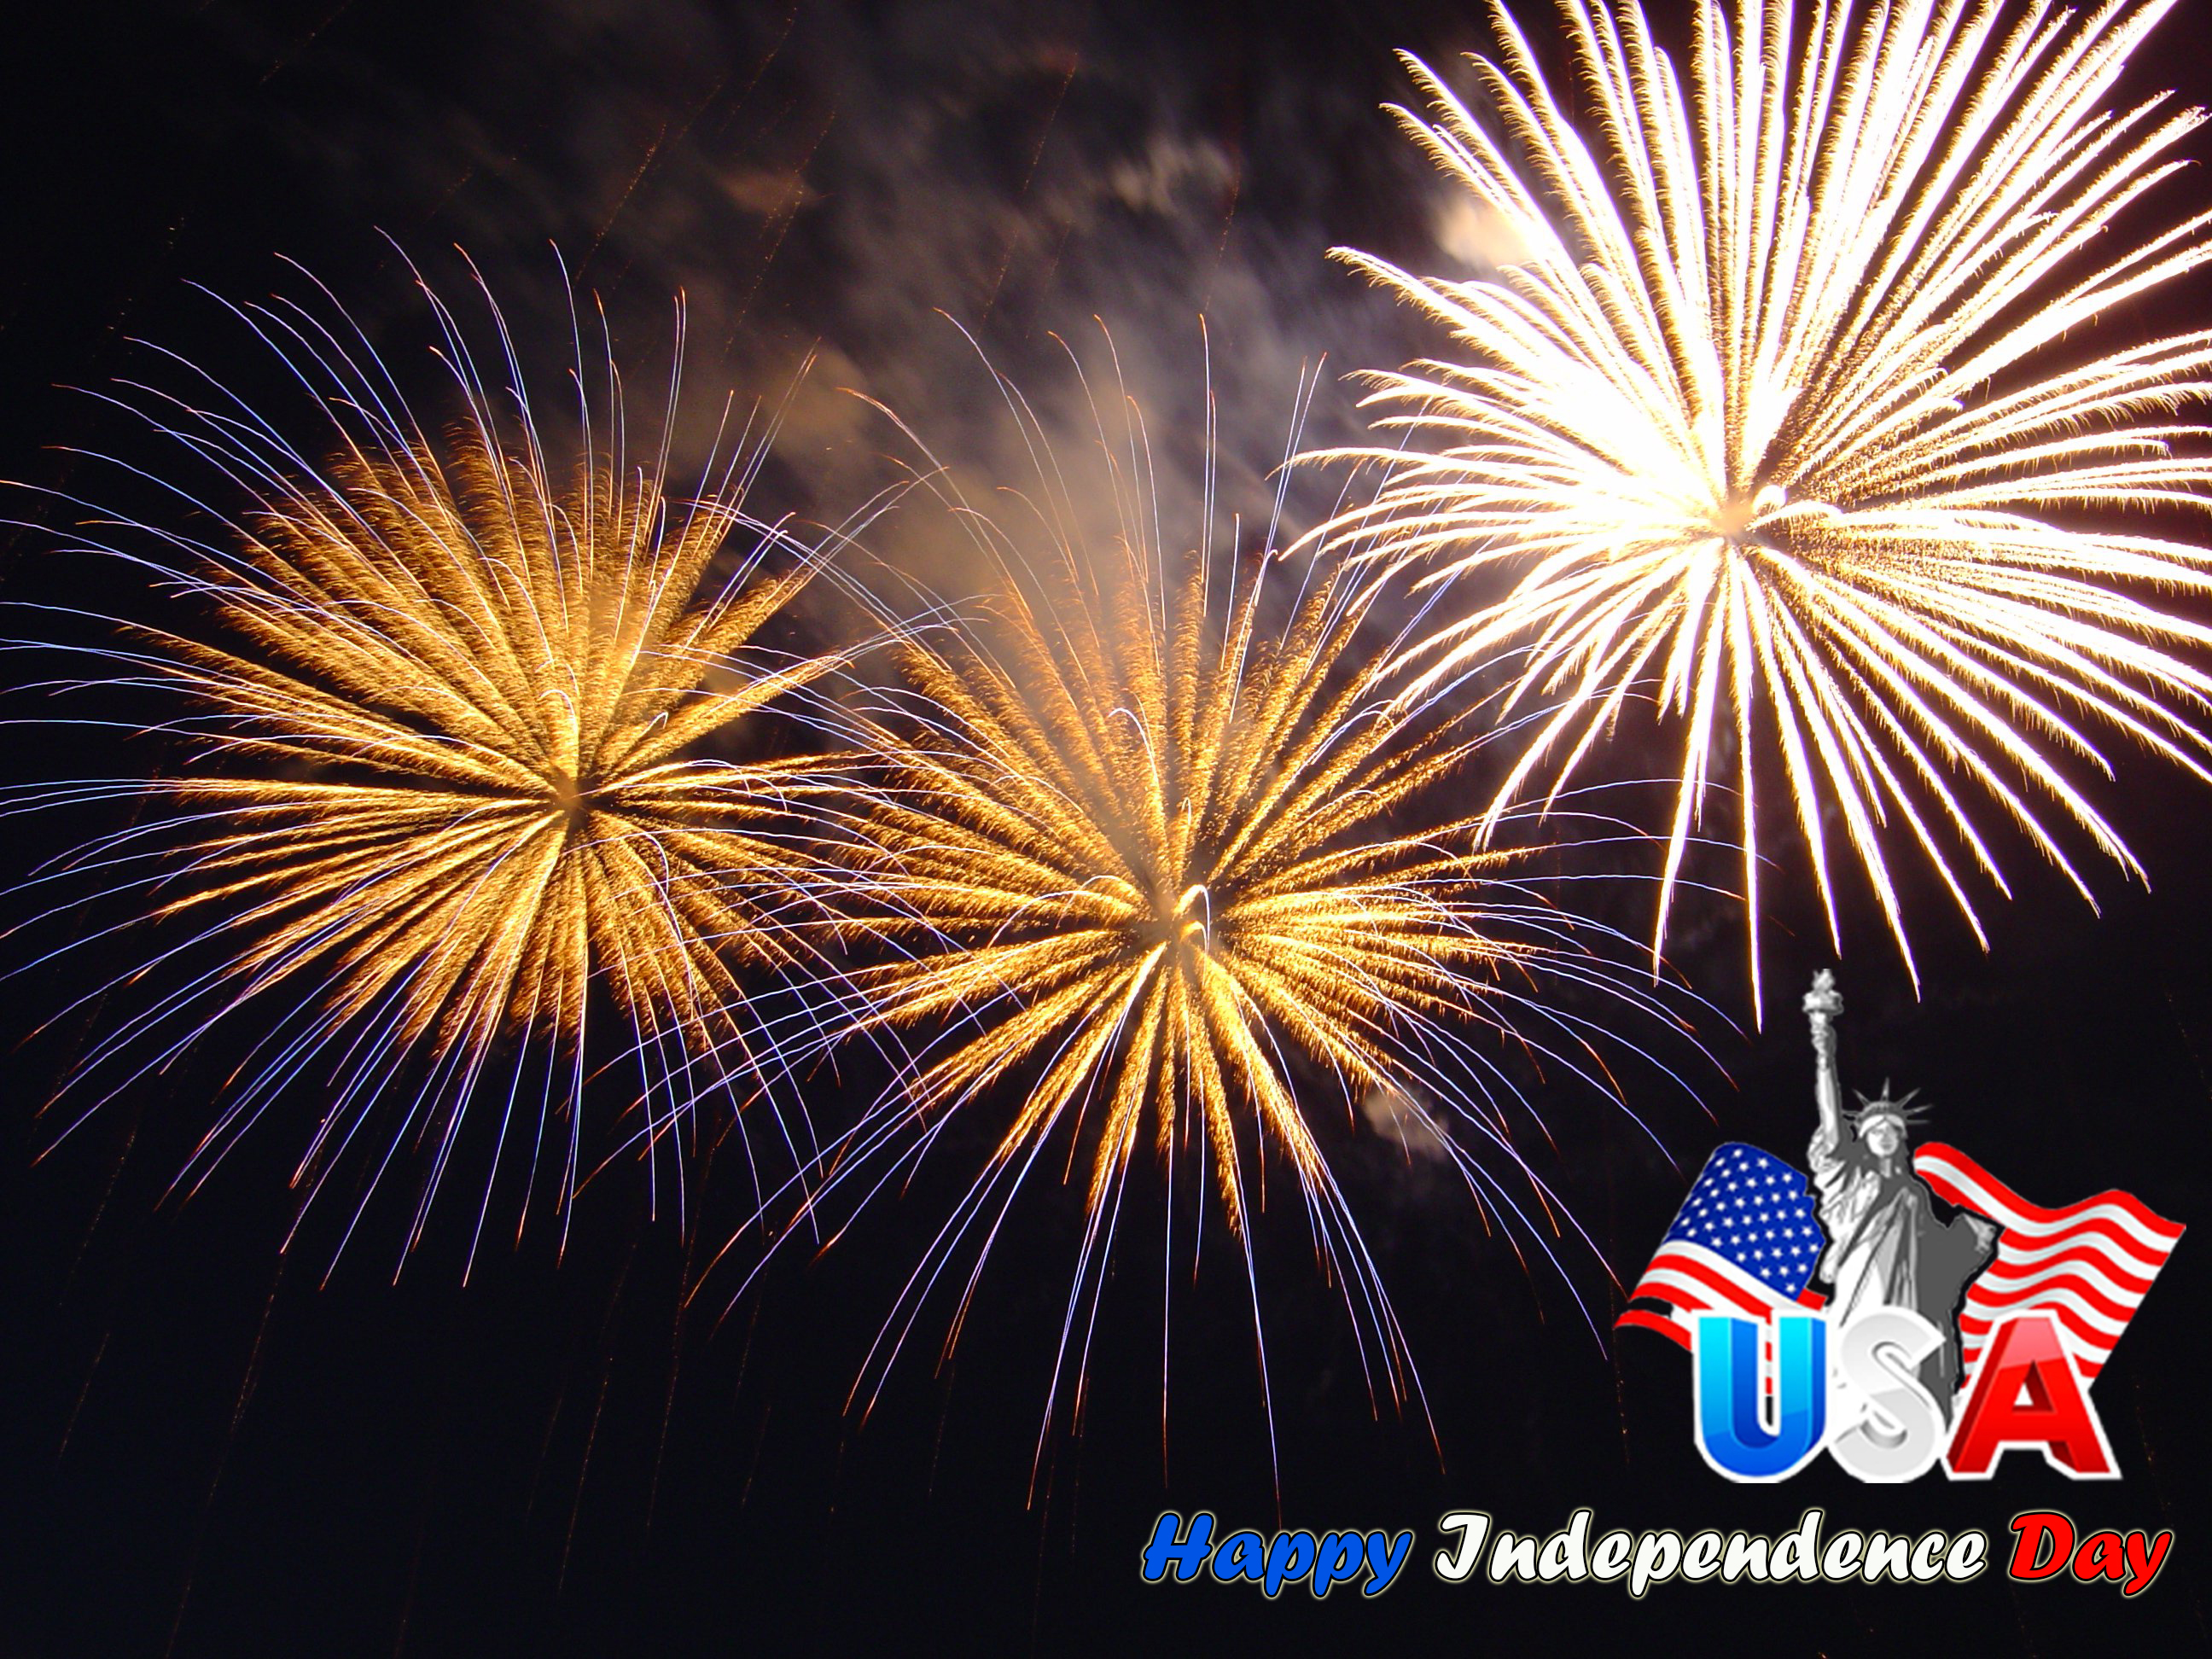 July-4 US Independence Day Free Image